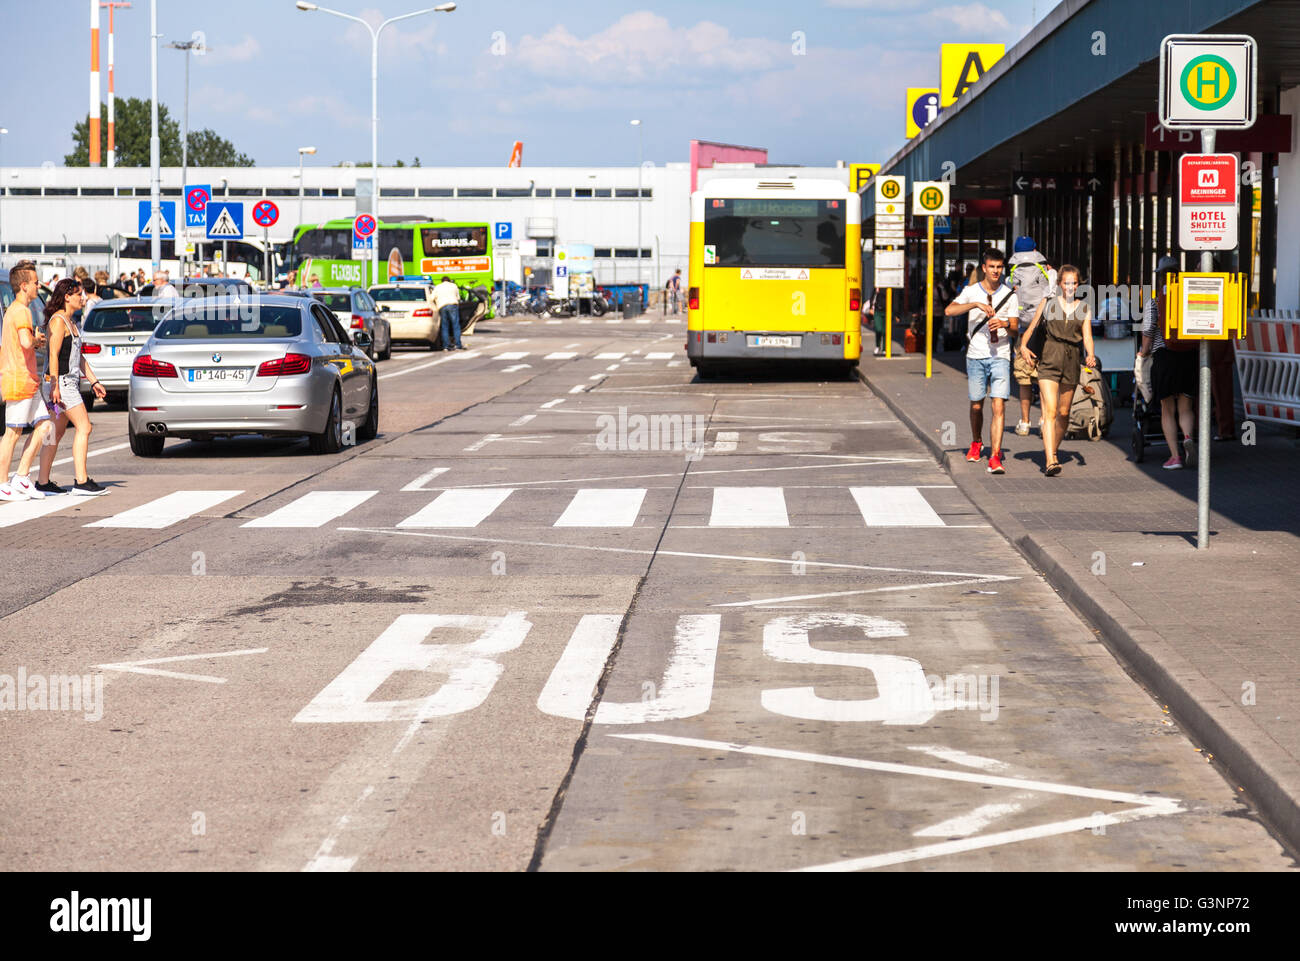 germany bus stop shelter stock photos germany bus stop shelter stock images alamy. Black Bedroom Furniture Sets. Home Design Ideas